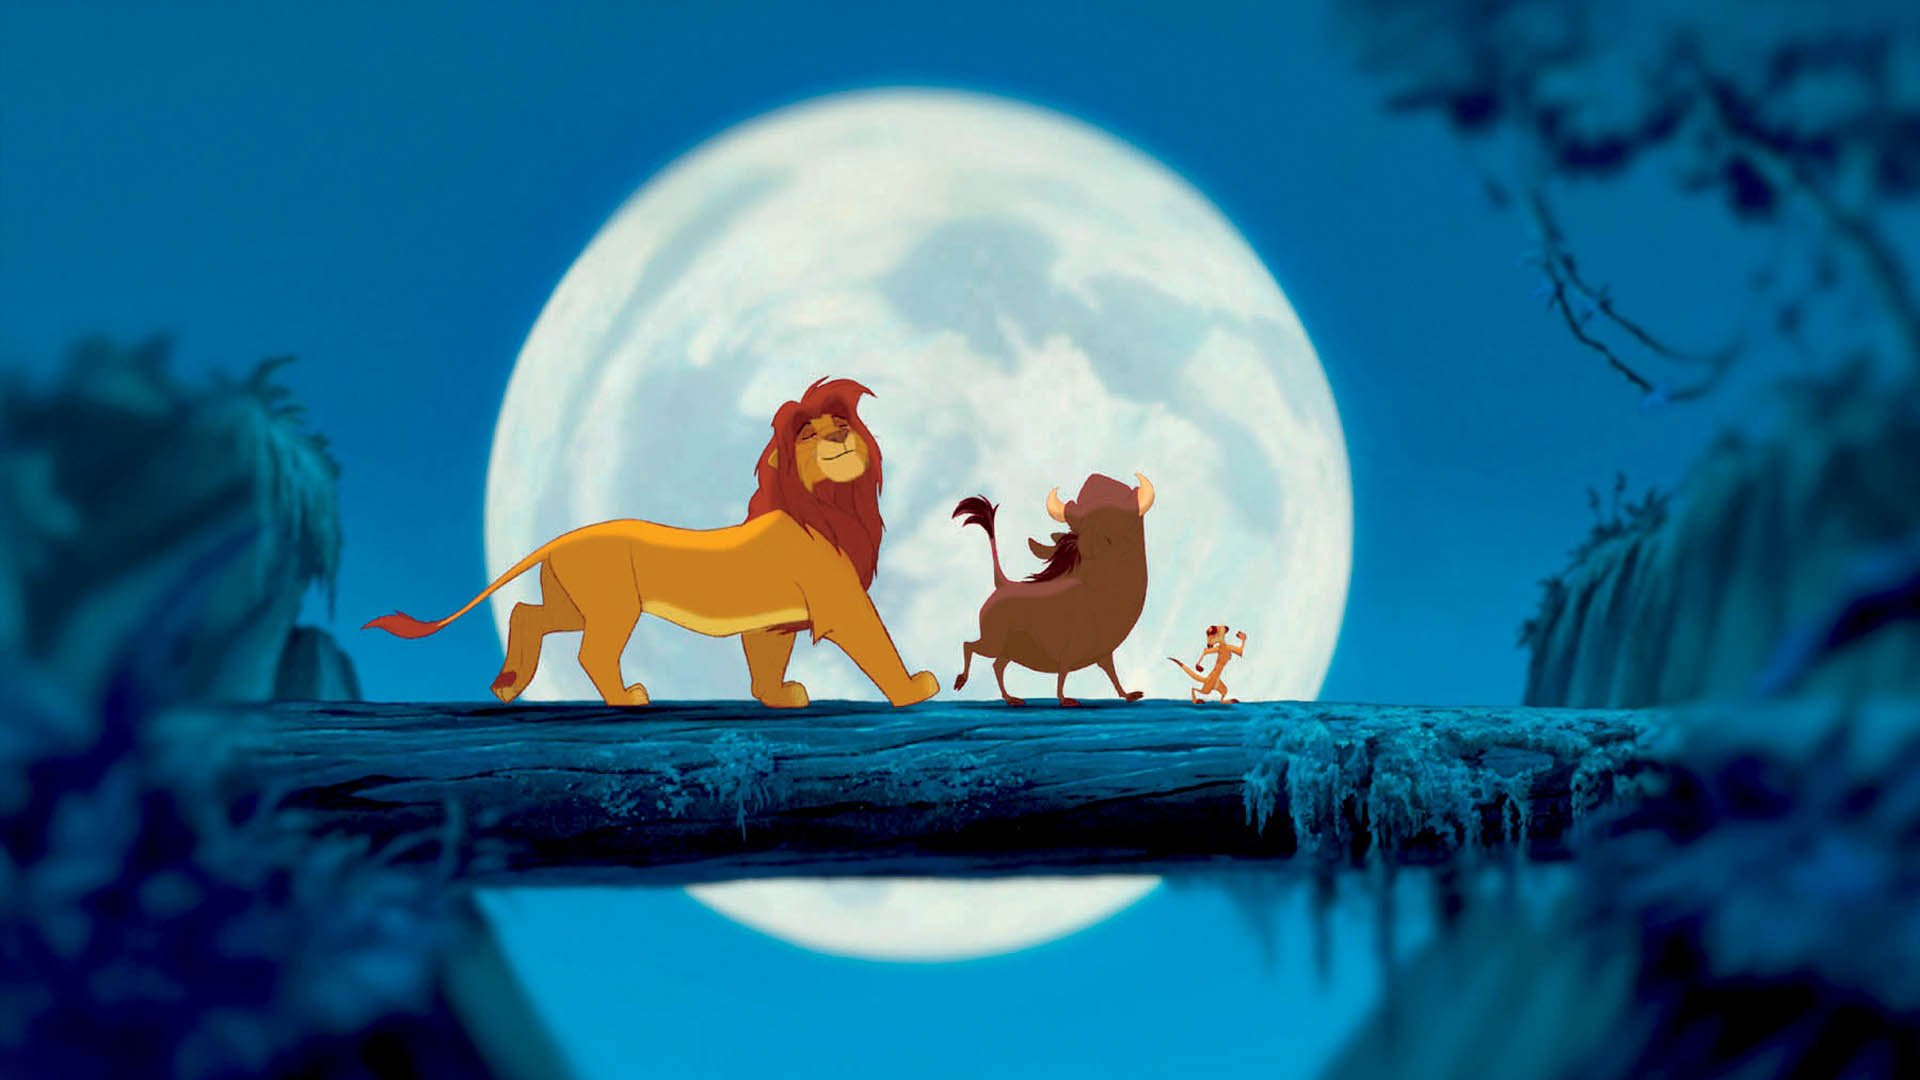 The Lion King 3D Wallpaper 1920x1080 Wallpapers 1920x1080 Wallpapers 1920x1080